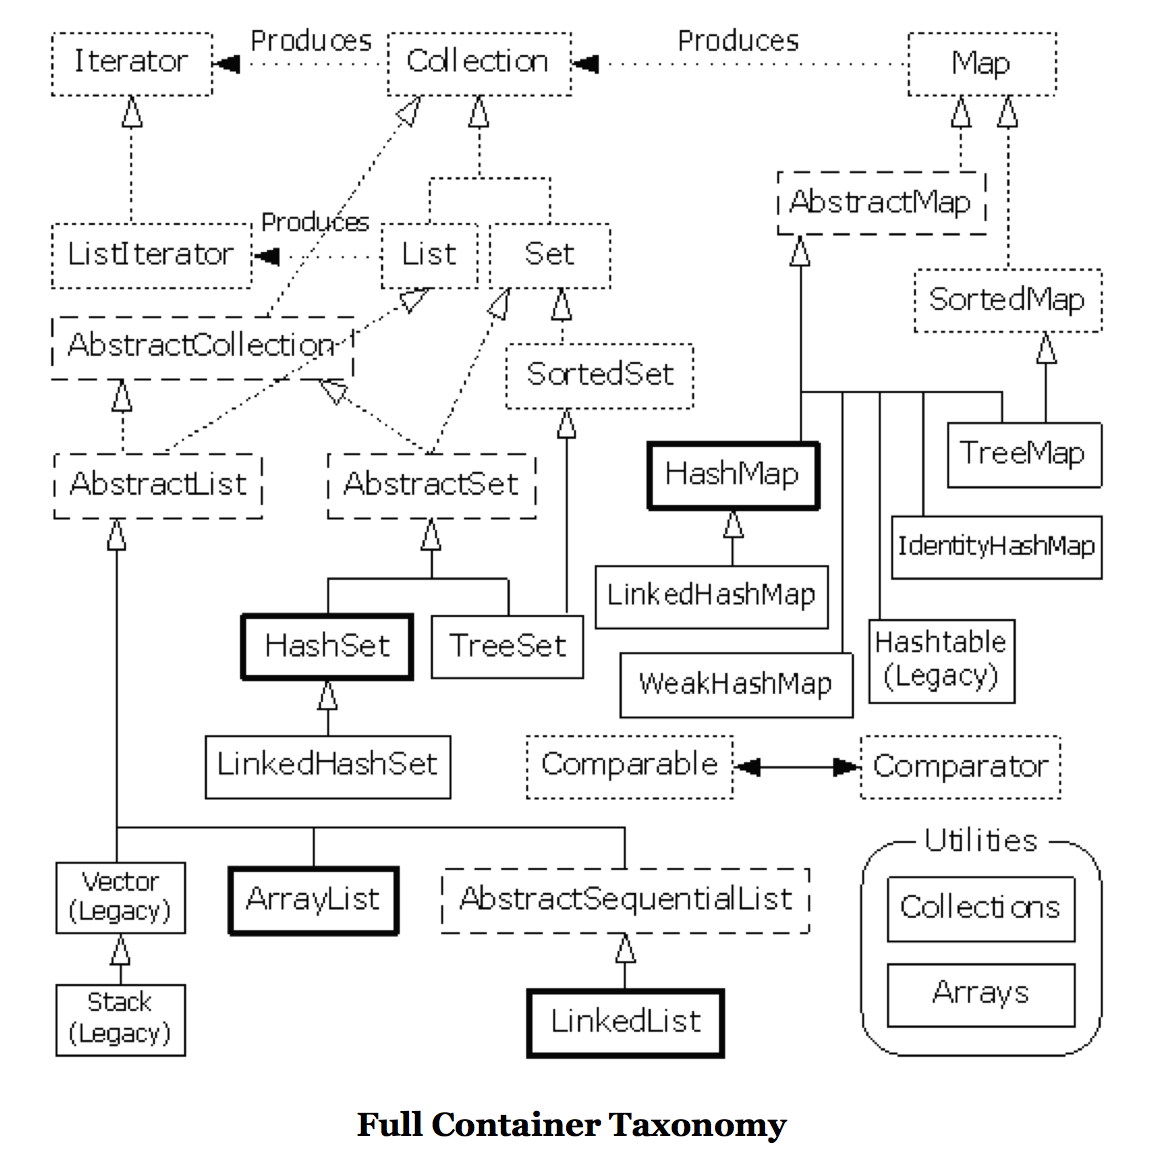 Full Container Taxonomy